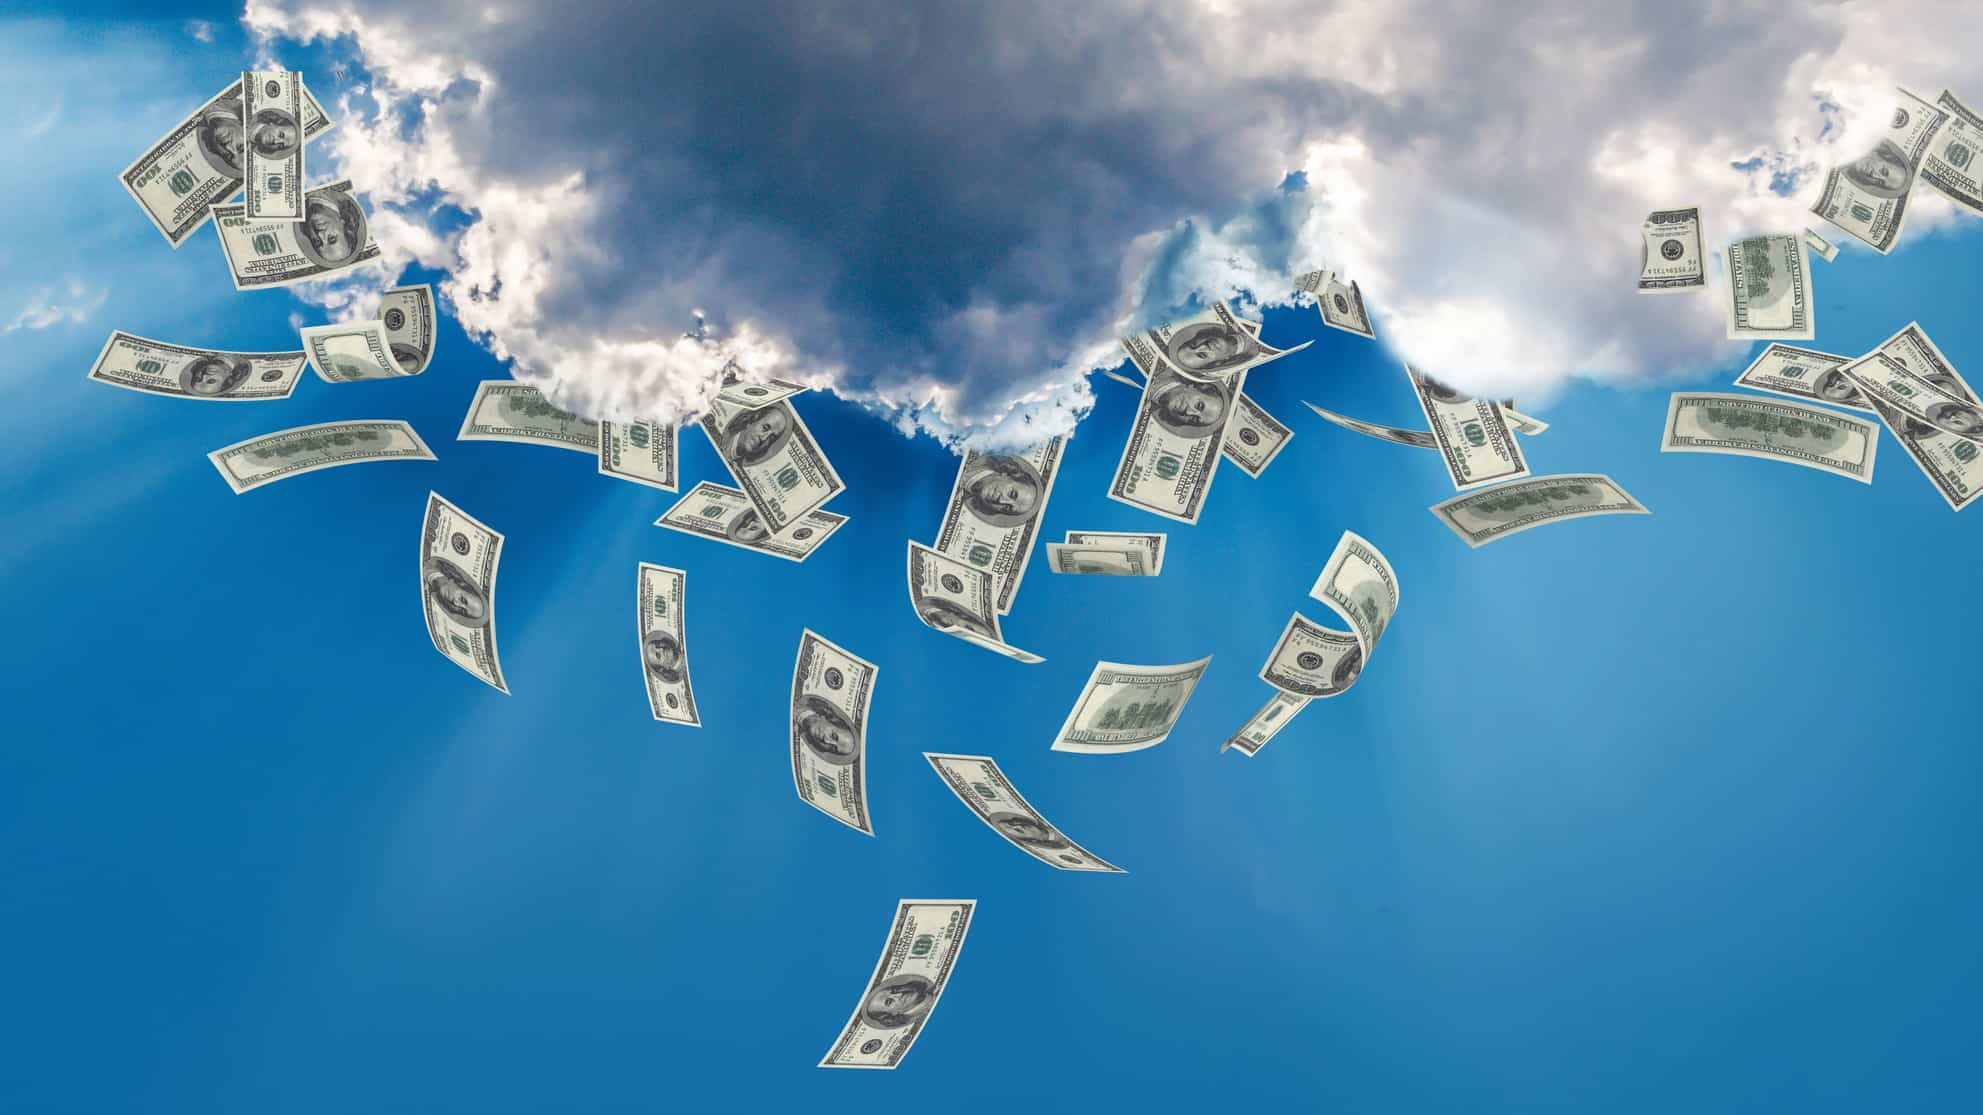 Cloud against blue sky with cash falling from it